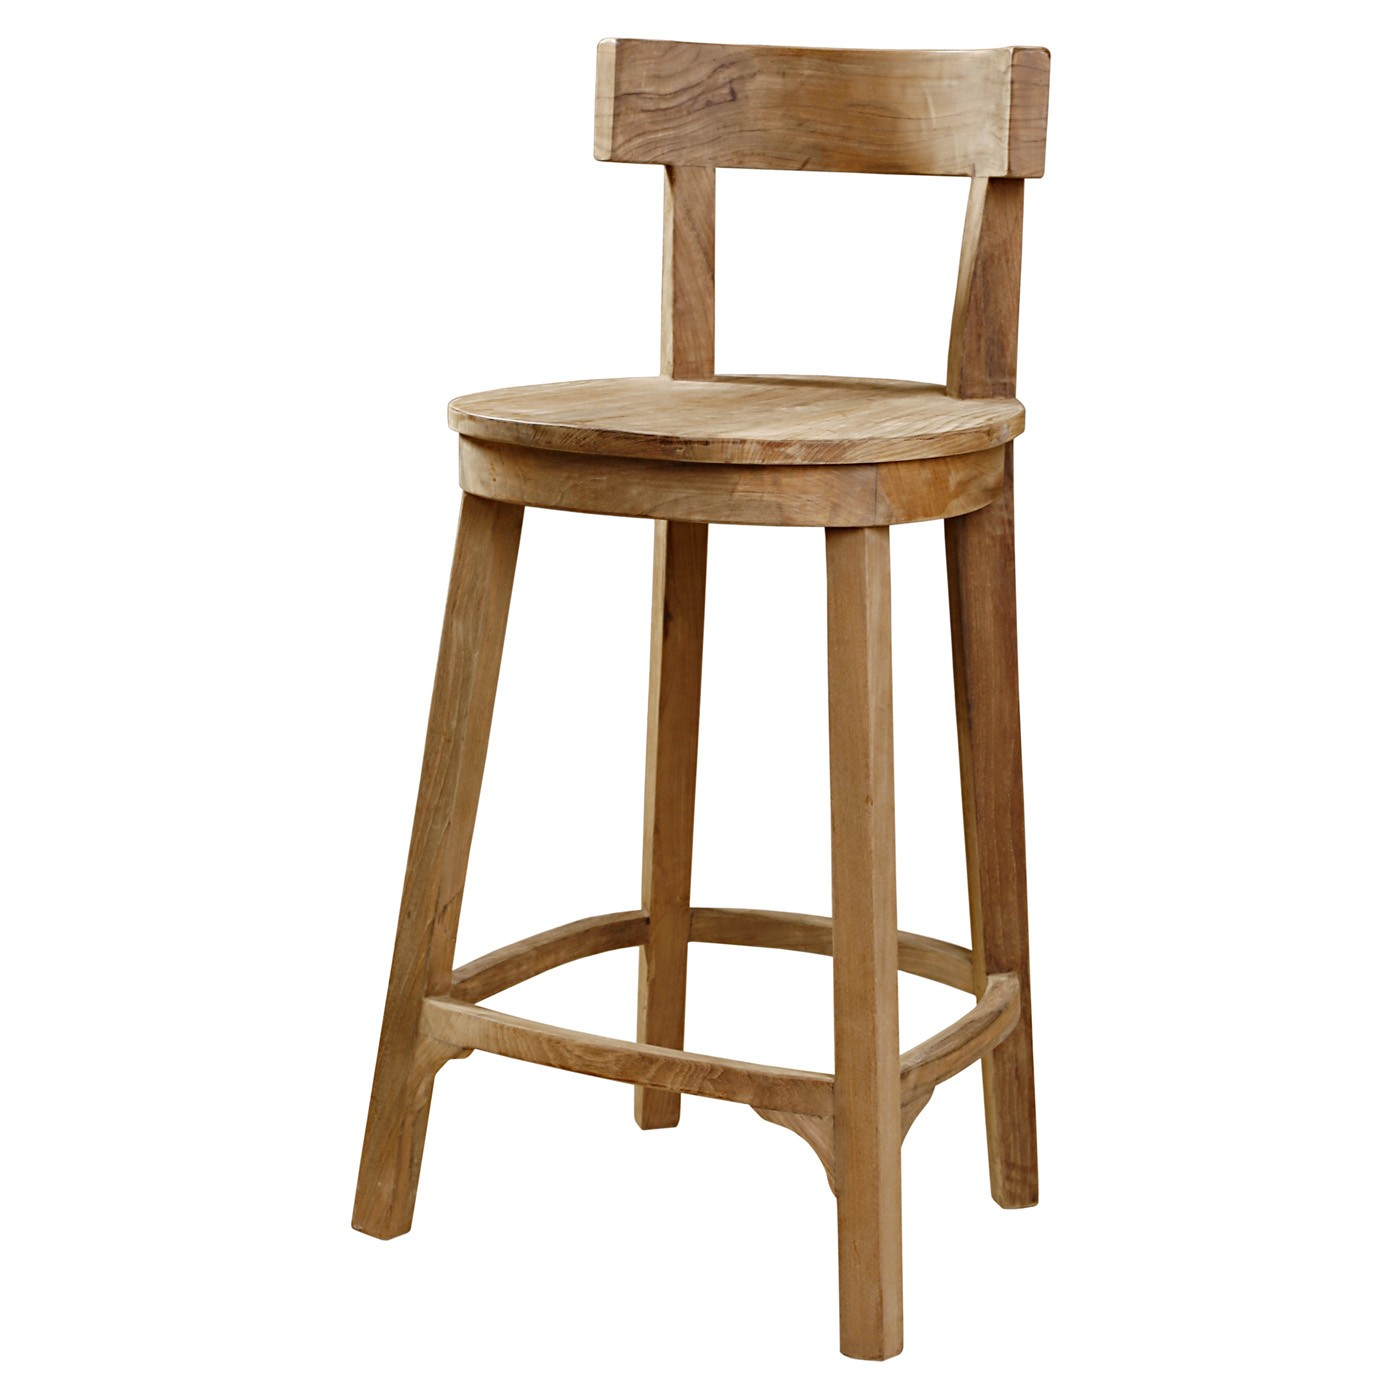 chic wooden cymax bar stools in cream for inspiring furniture ideas